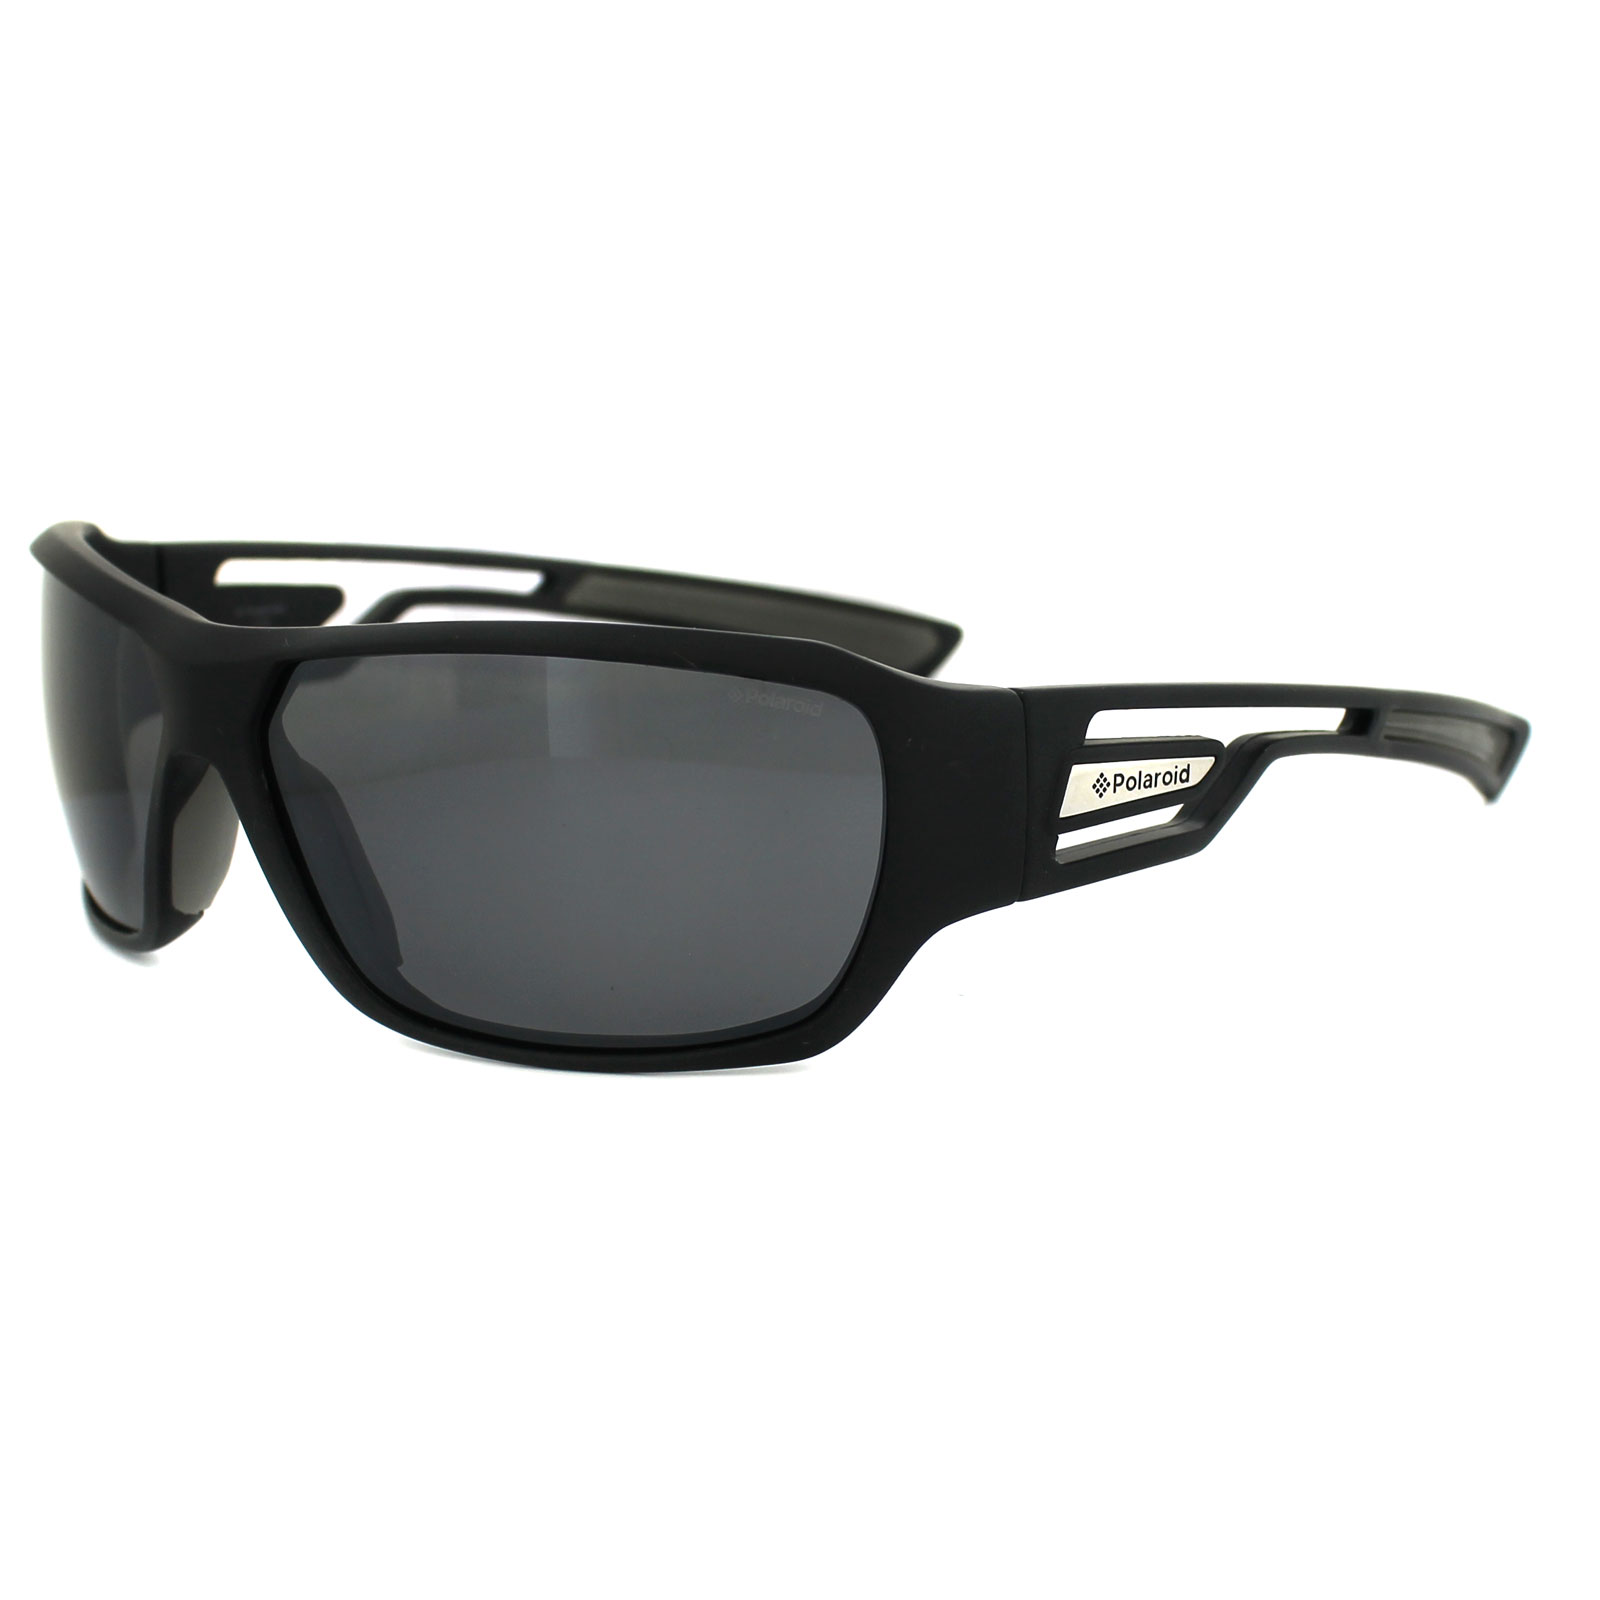 2a642be864fc Cheap Polaroid Sport P7401 Sunglasses - Discounted Sunglasses